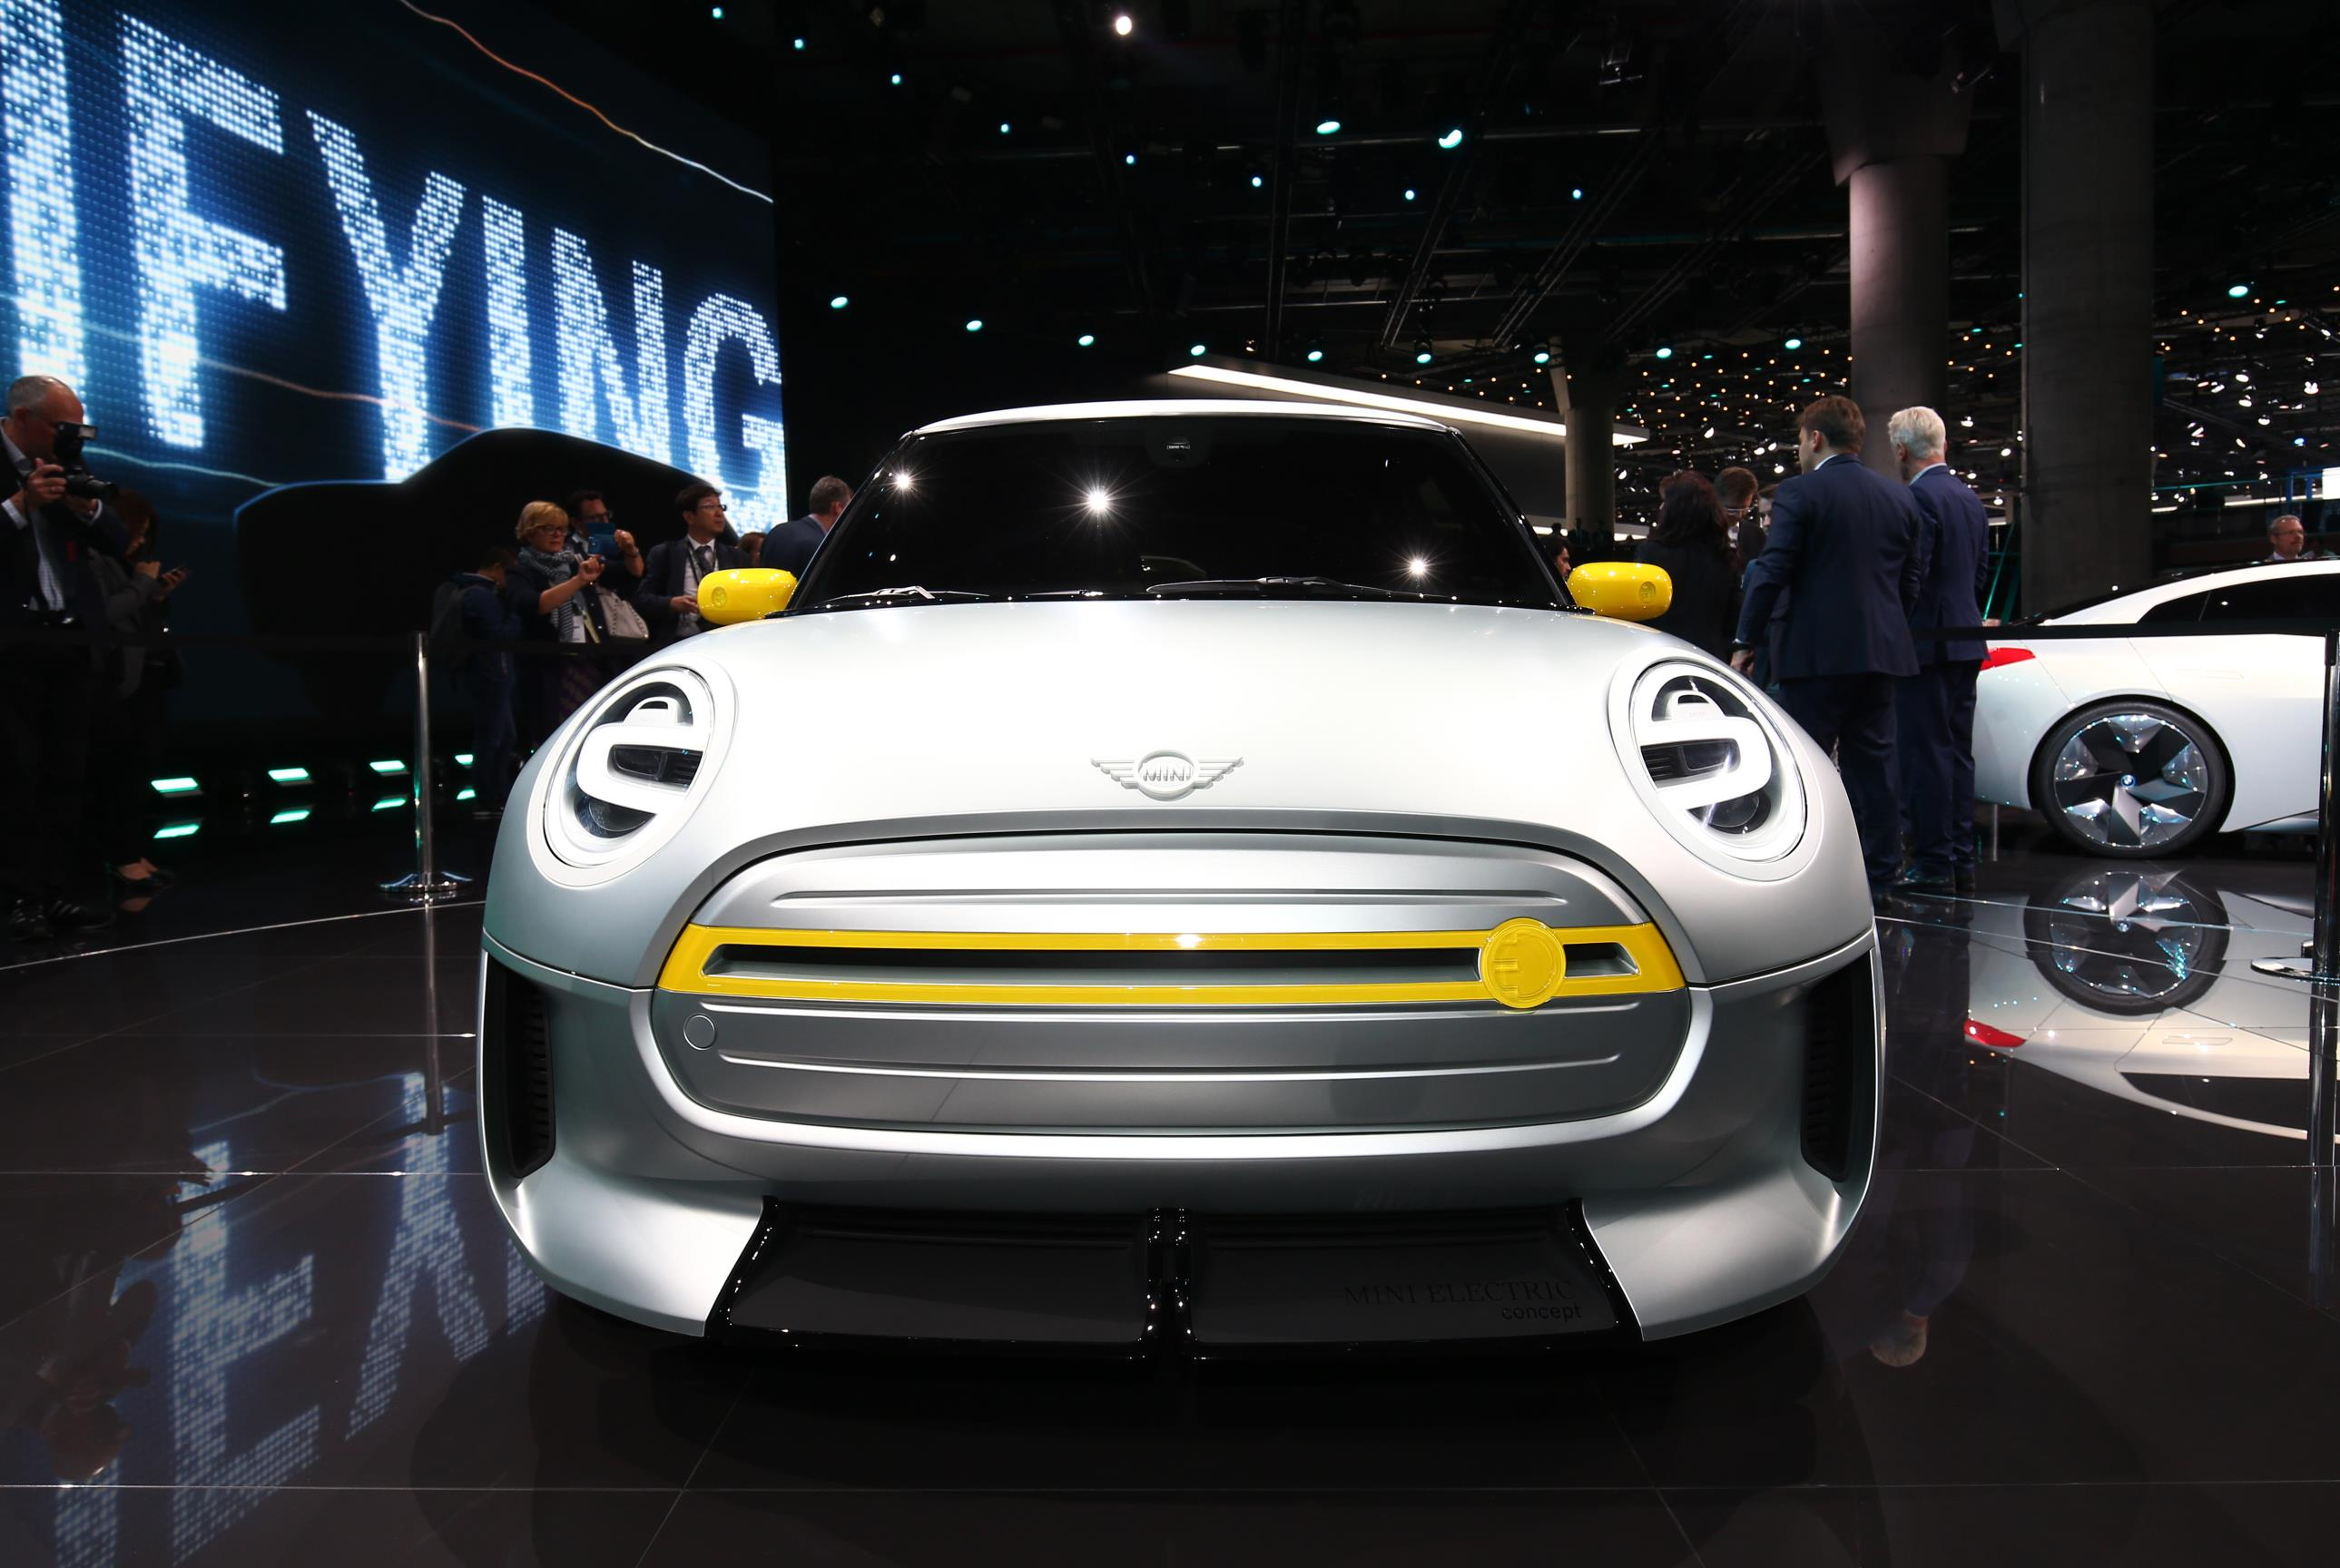 MINI At The Los Angeles Auto Show MotoringFile - Car show in los angeles this weekend